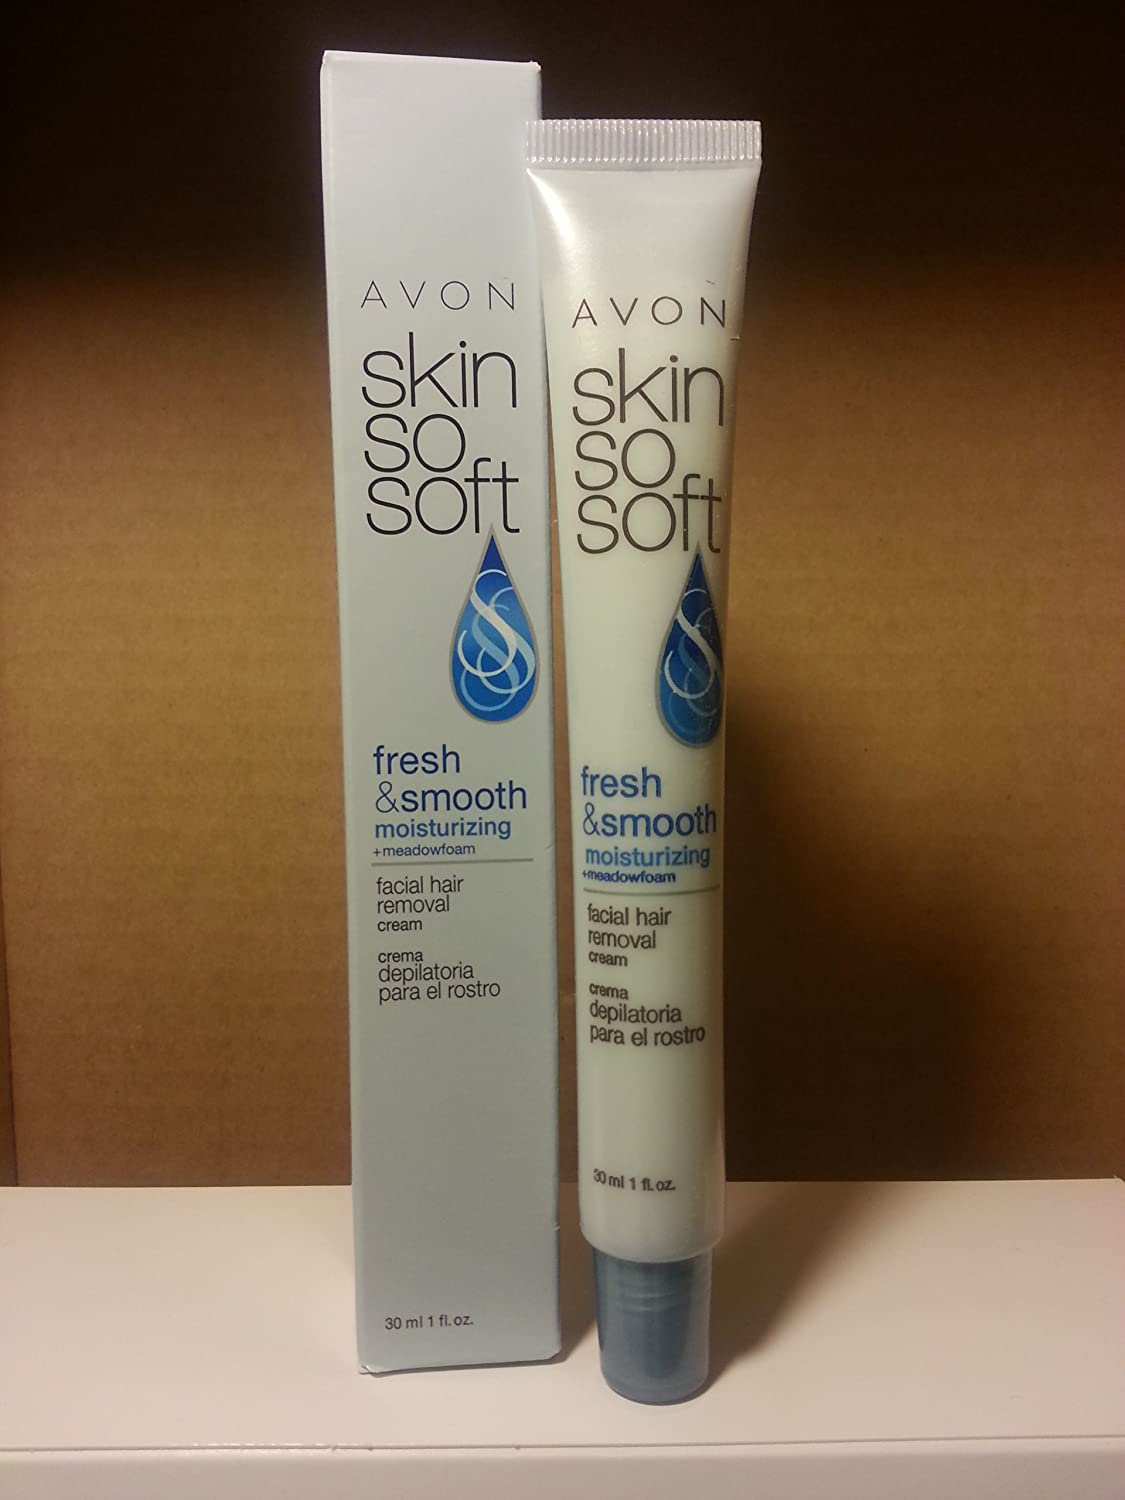 Amazon.com : Avon SKin So Soft Fresh & Smooth Moisturizing Facial Hair Removal Cream - 1 oz. : Beauty Products : Beauty